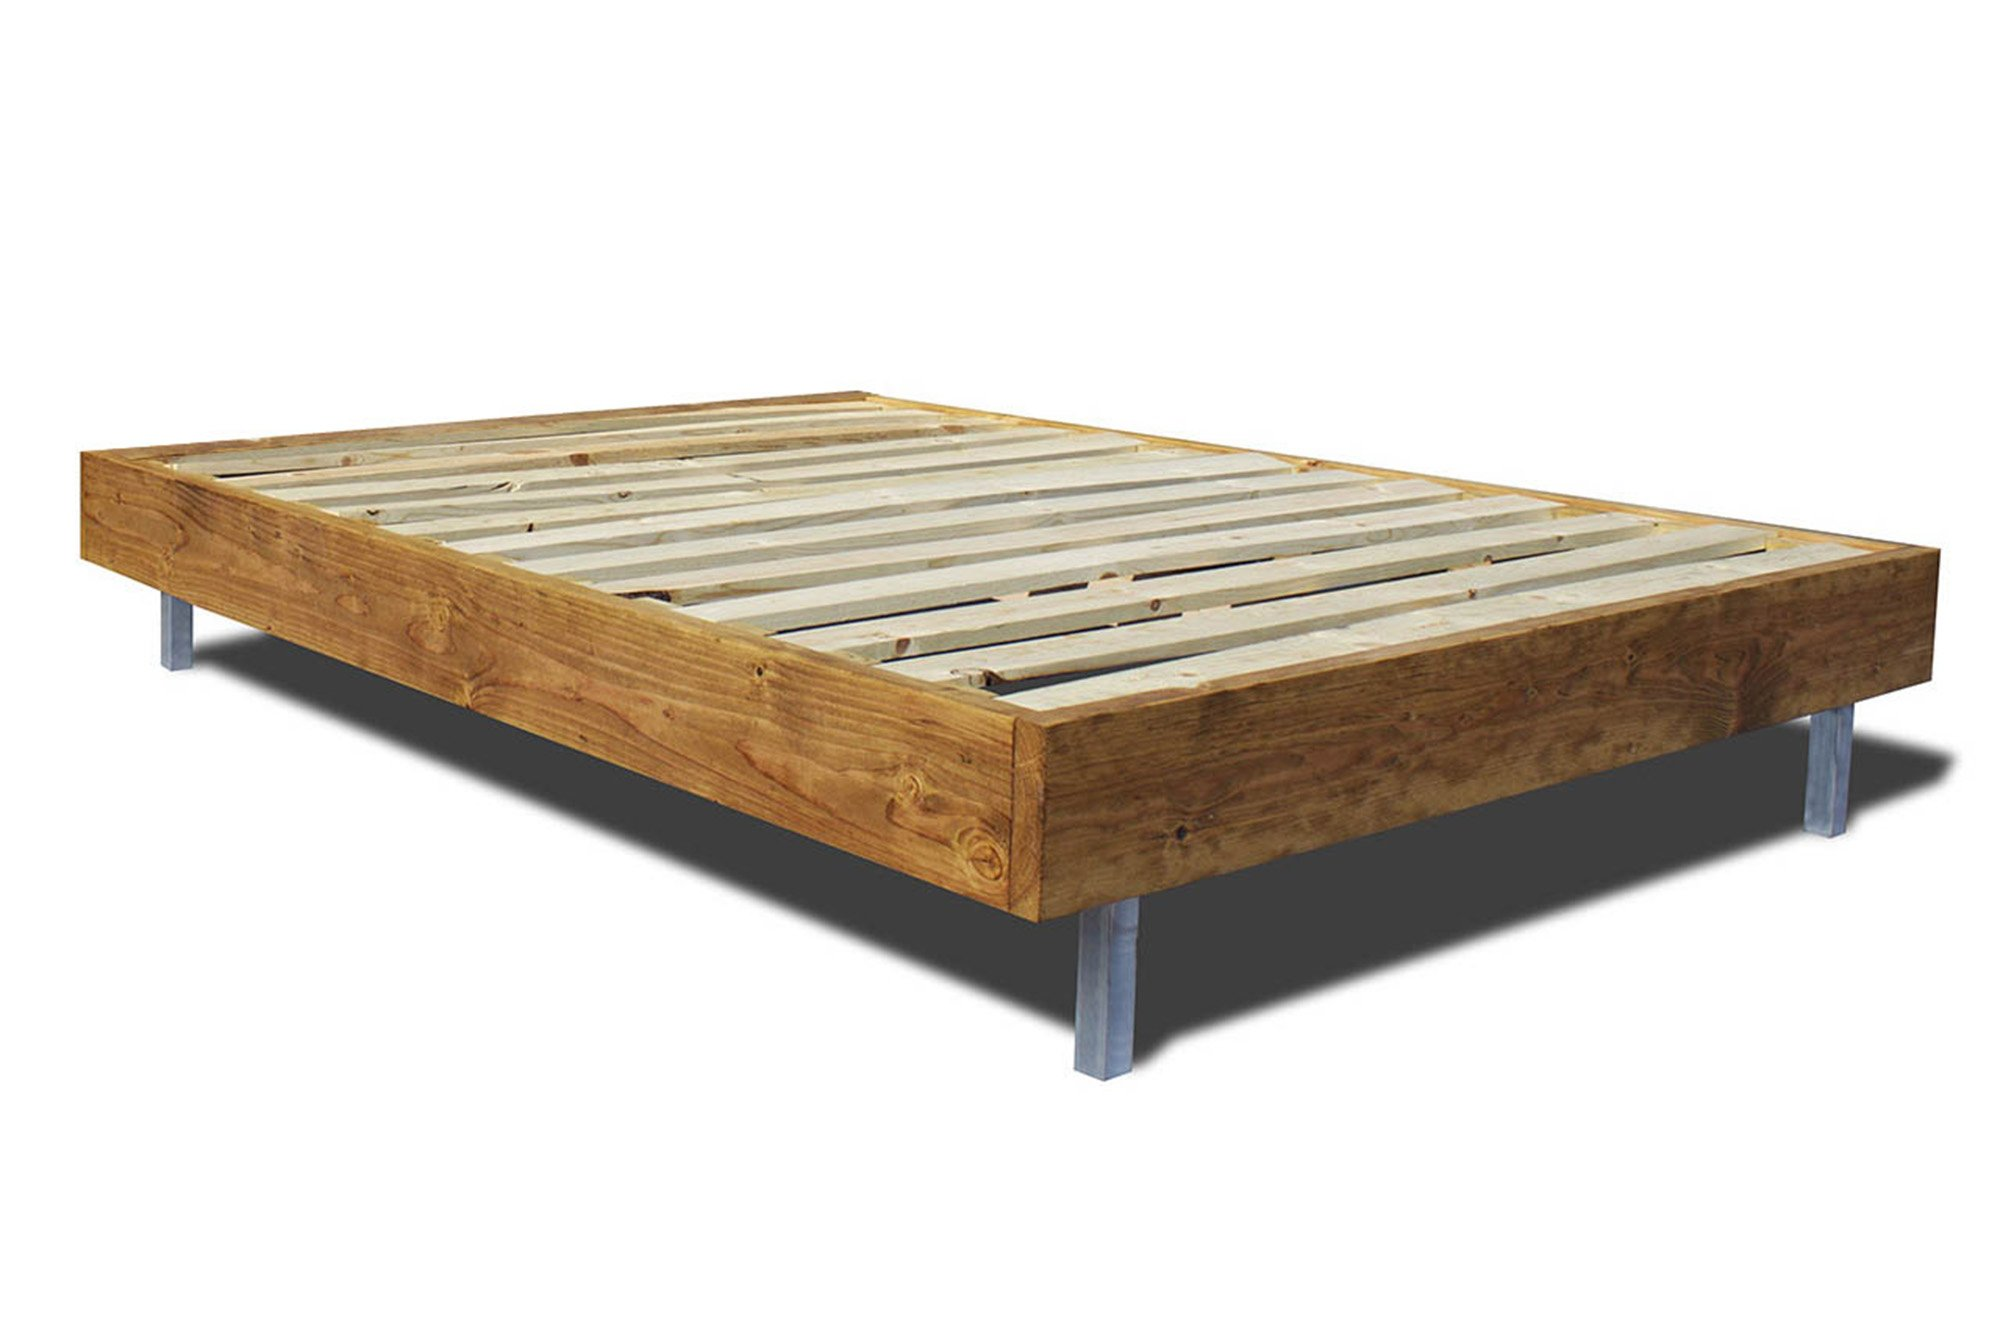 Strawberry Base Wood Platform Bed Wooden Bed Frames Diy